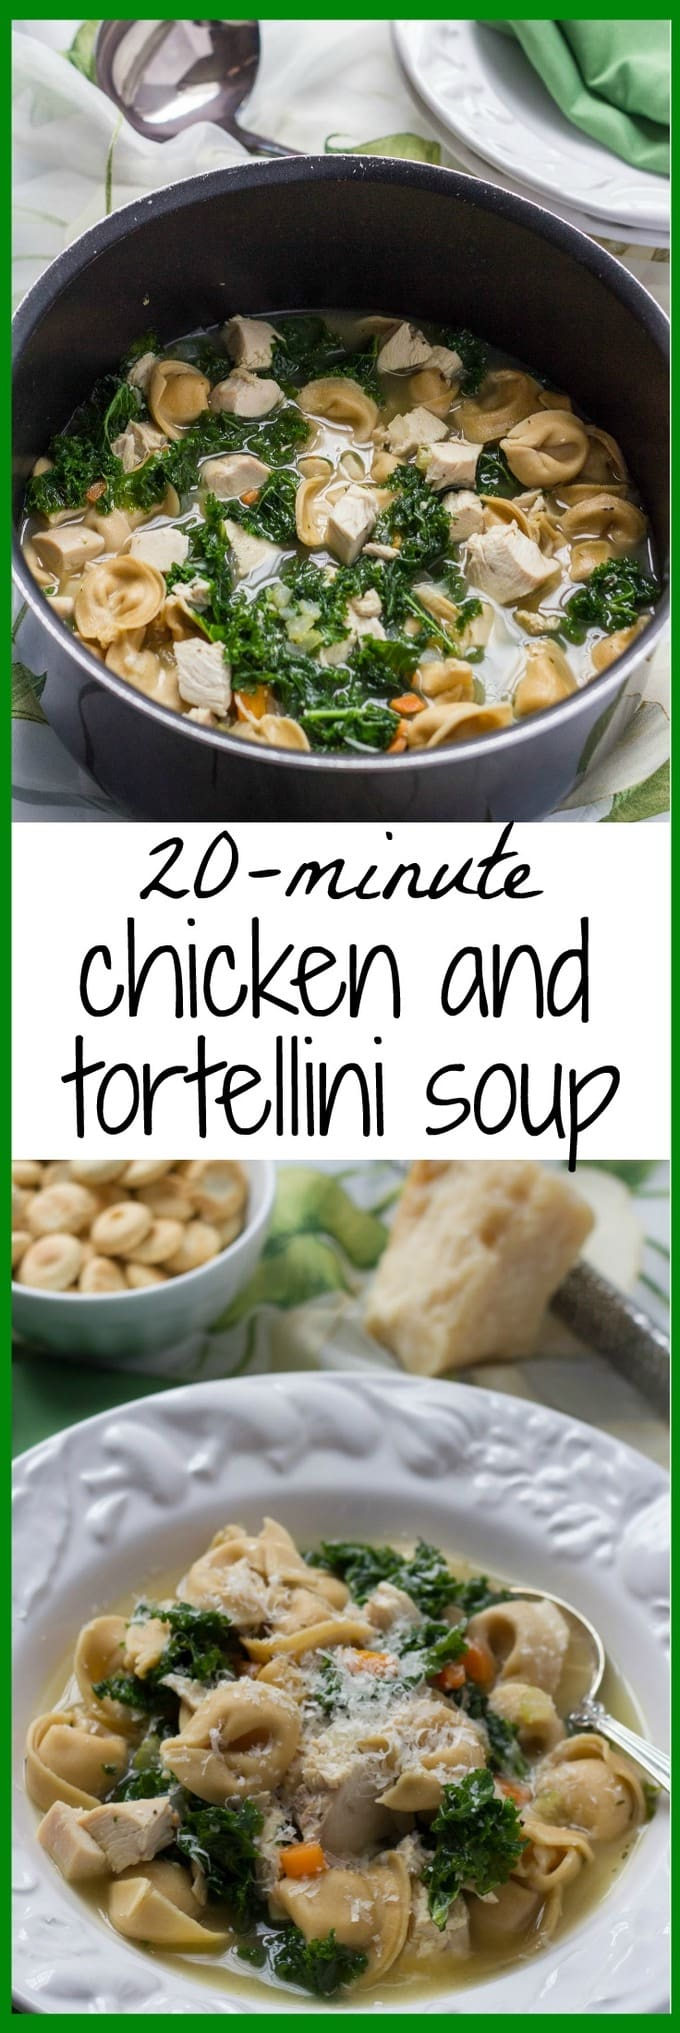 A one-pot chicken tortellini soup that's ready in 20 minutes - light, healthy and full of flavor! | FamilyFoodontheTable.com